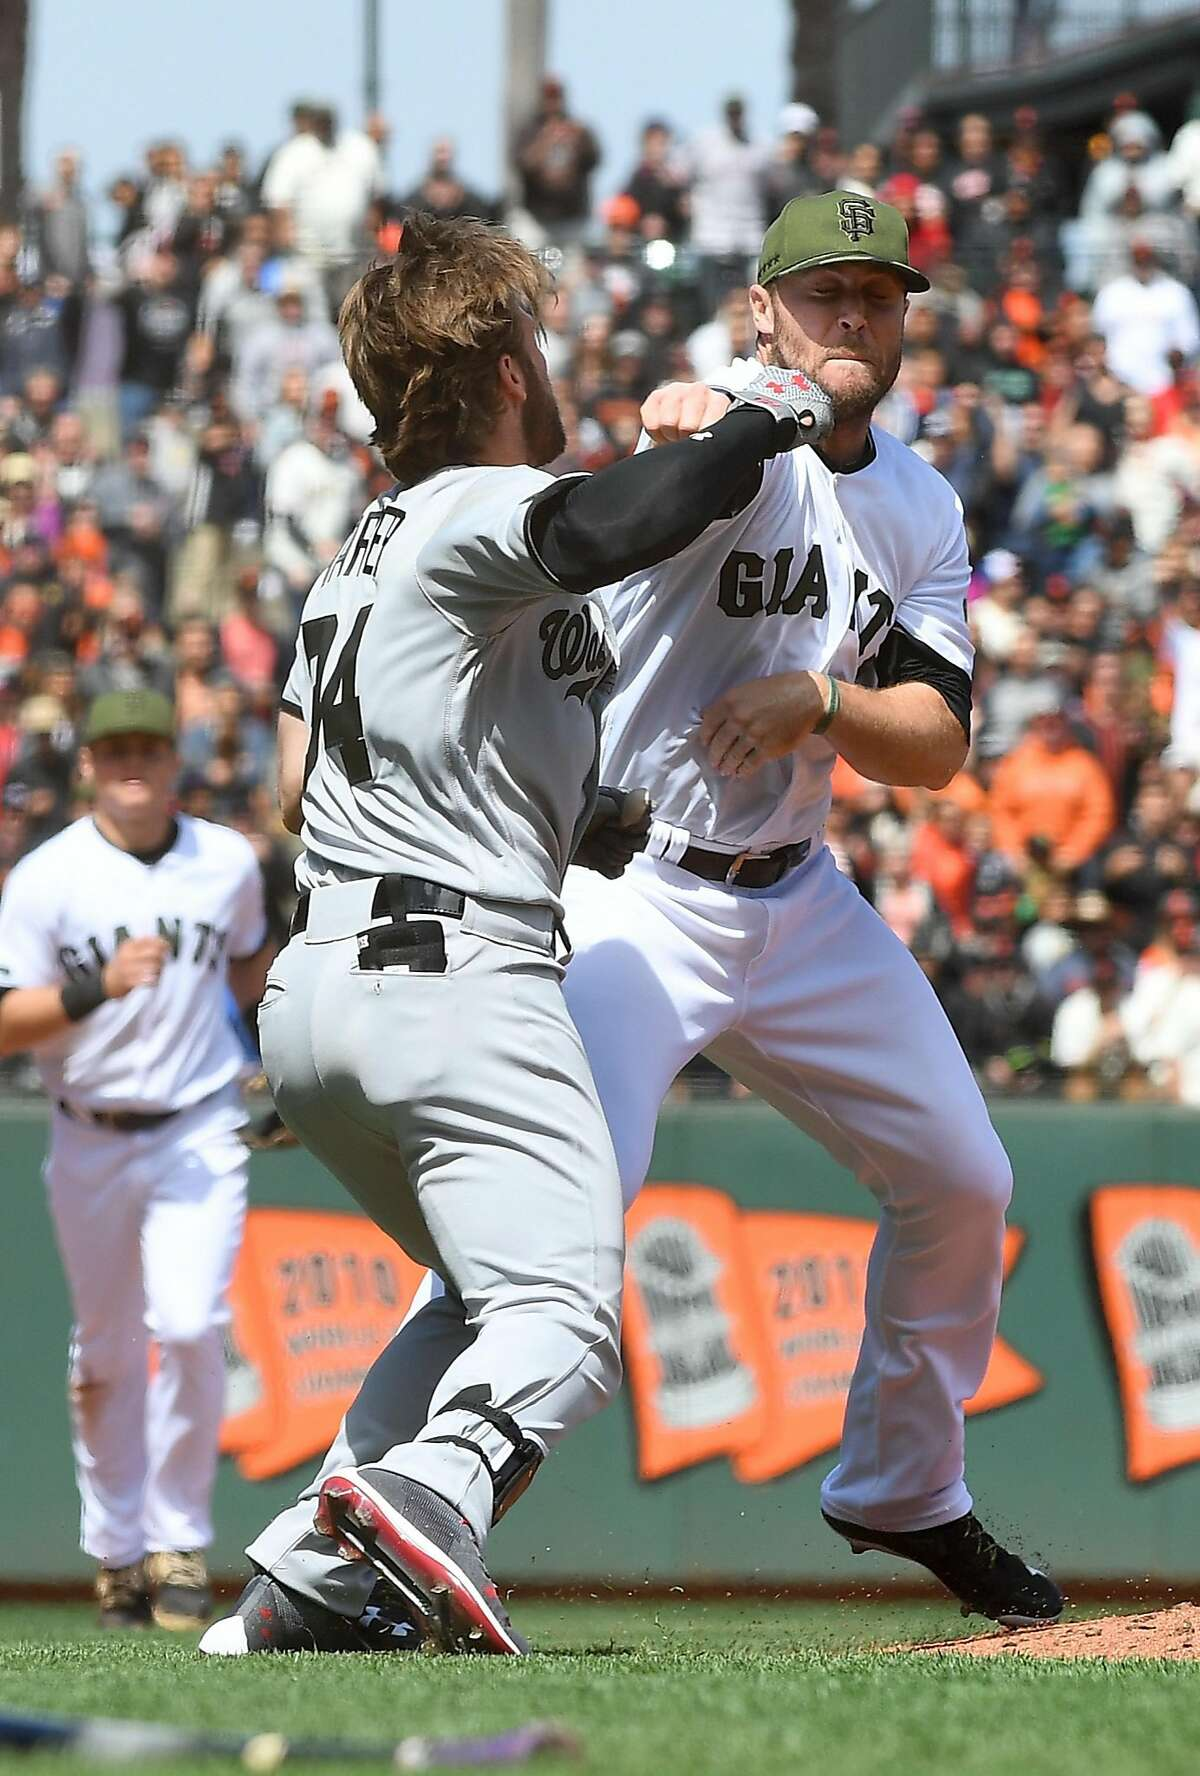 Bryce Harper #34 of the Washington Nationals and Hunter Strickland #60 of the San Francisco Giants throw punches at one another after Strickland hit Harper with a pitch in the top of the eighth inning at AT&T Park on May 29, 2017 in San Francisco, California. (Photo by Thearon W. Henderson/Getty Images)